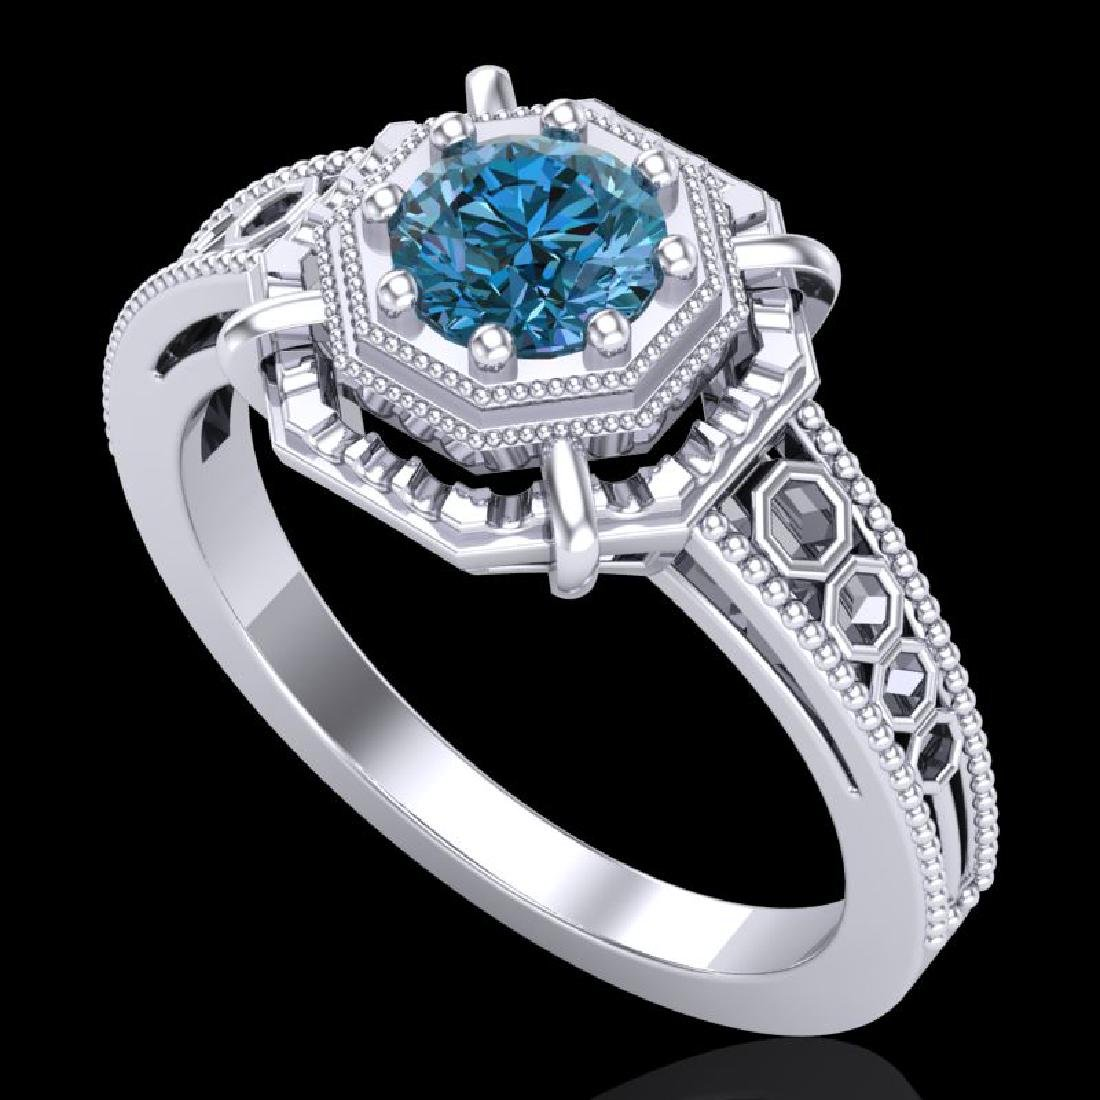 0.53 CTW Fancy Intense Blue Diamond Solitaire Art Deco